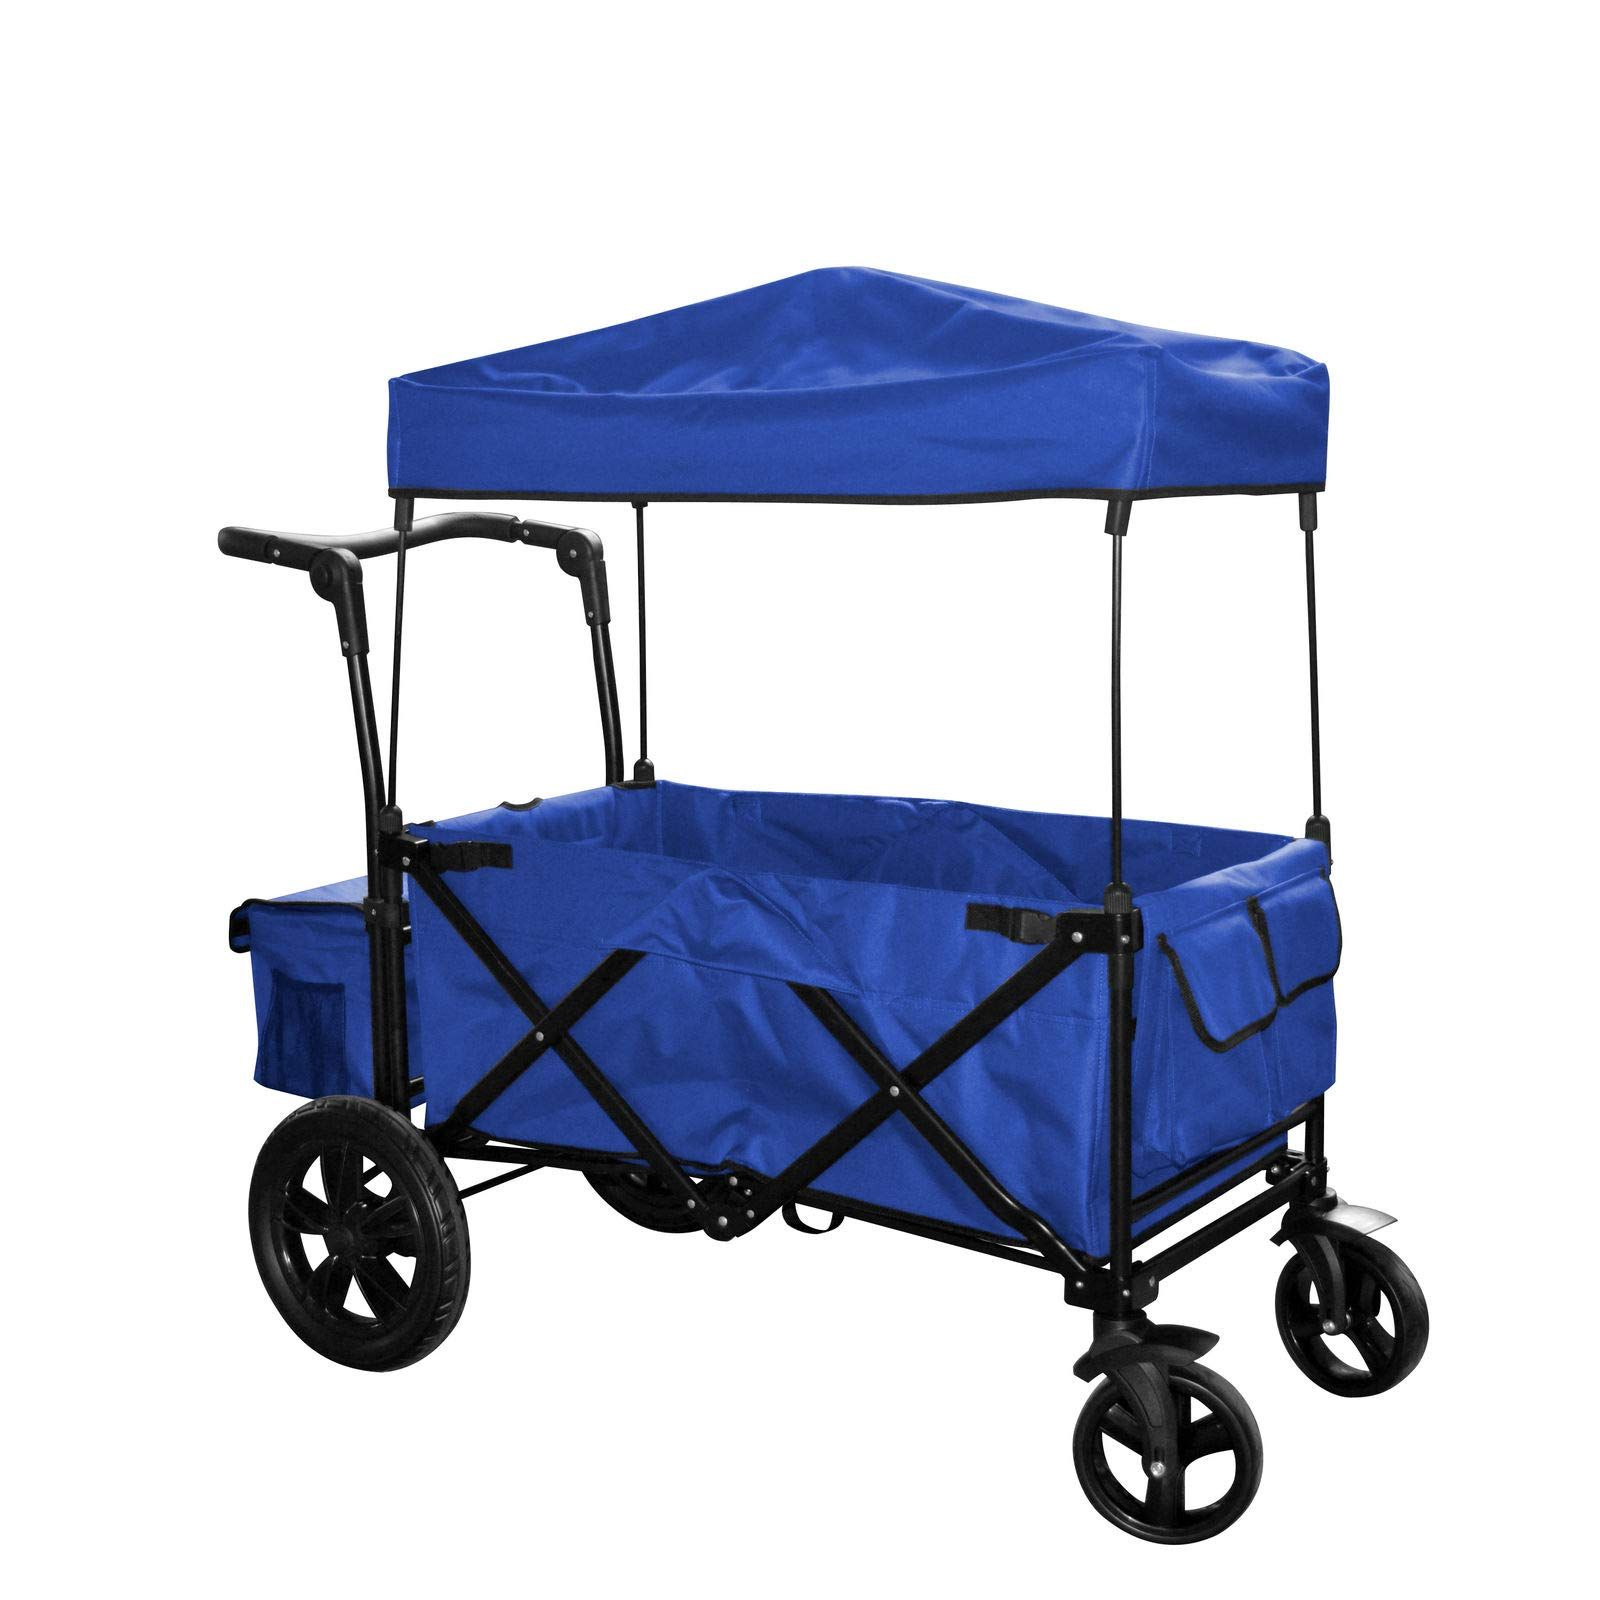 Folding Sport Push Wagon (With images) Wagon, Sports